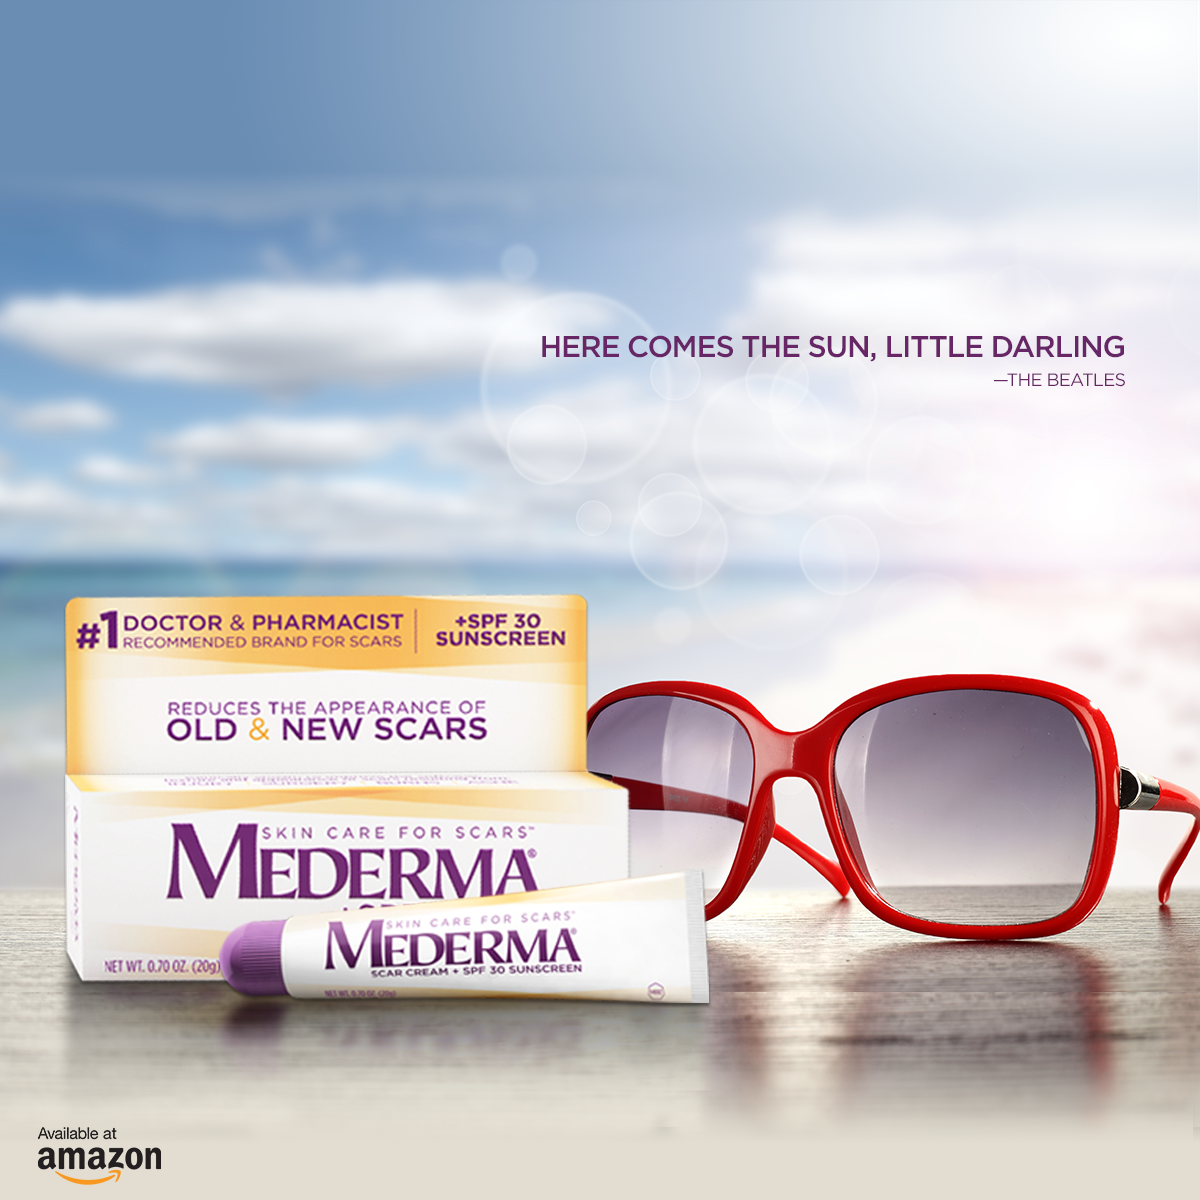 Here Comes The Sun Mederma Scar Cream Plus Spf 30 Can Help Protect Your Skin From Sunburn While Making Your Scar L Mederma Scar Cream Scar Cream Mederma Scar